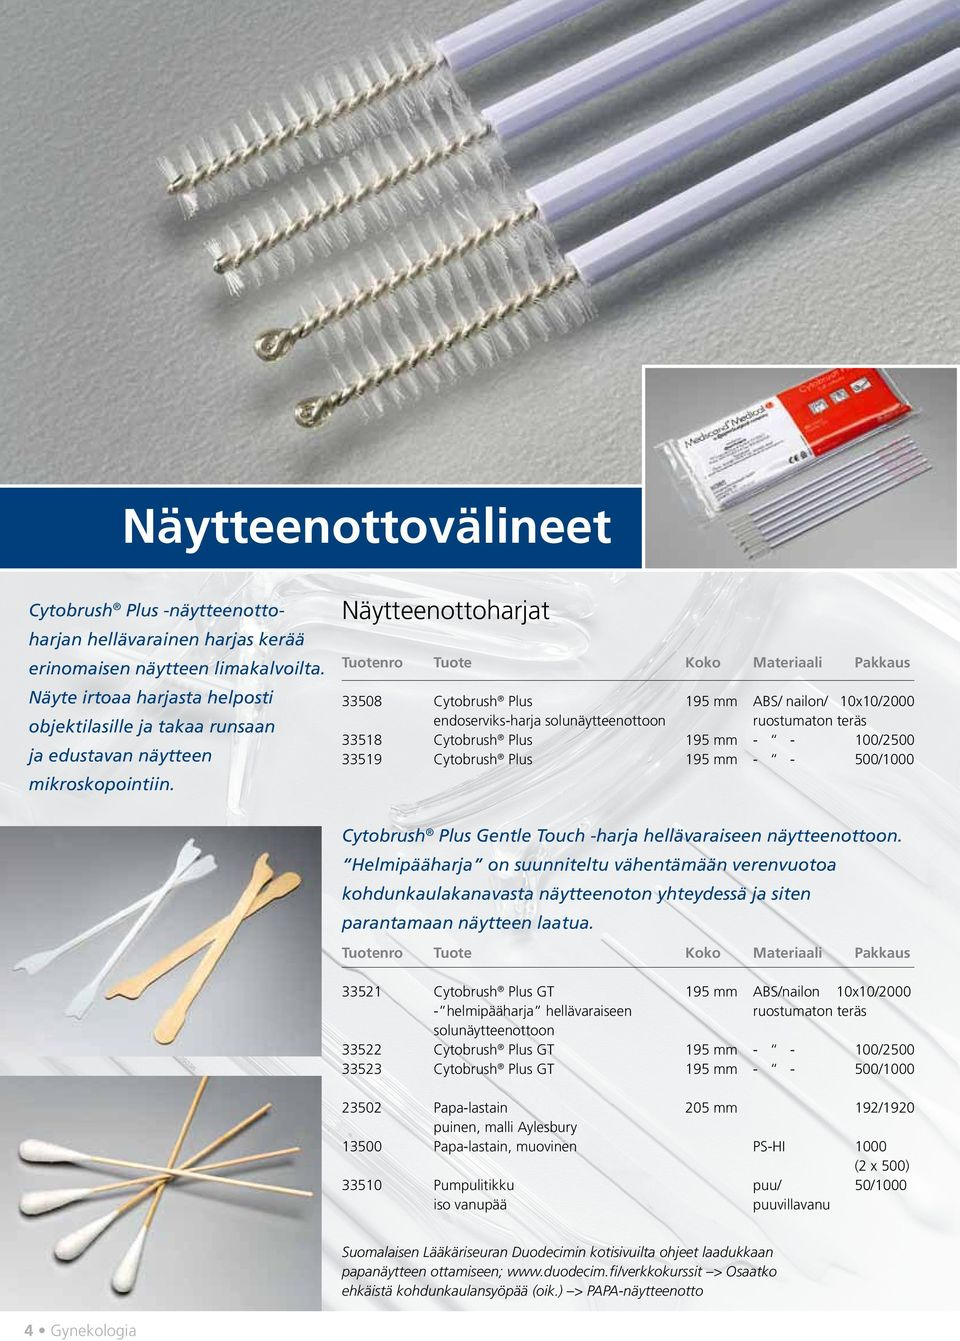 Näytteenottoharjat 33508 Cytobrush Plus 195 mm ABS/ nailon/ 10x10/2000 endoserviks-harja solunäytteenottoon ruostumaton teräs 33518 Cytobrush Plus 195 mm - - 100/2500 33519 Cytobrush Plus 195 mm - -